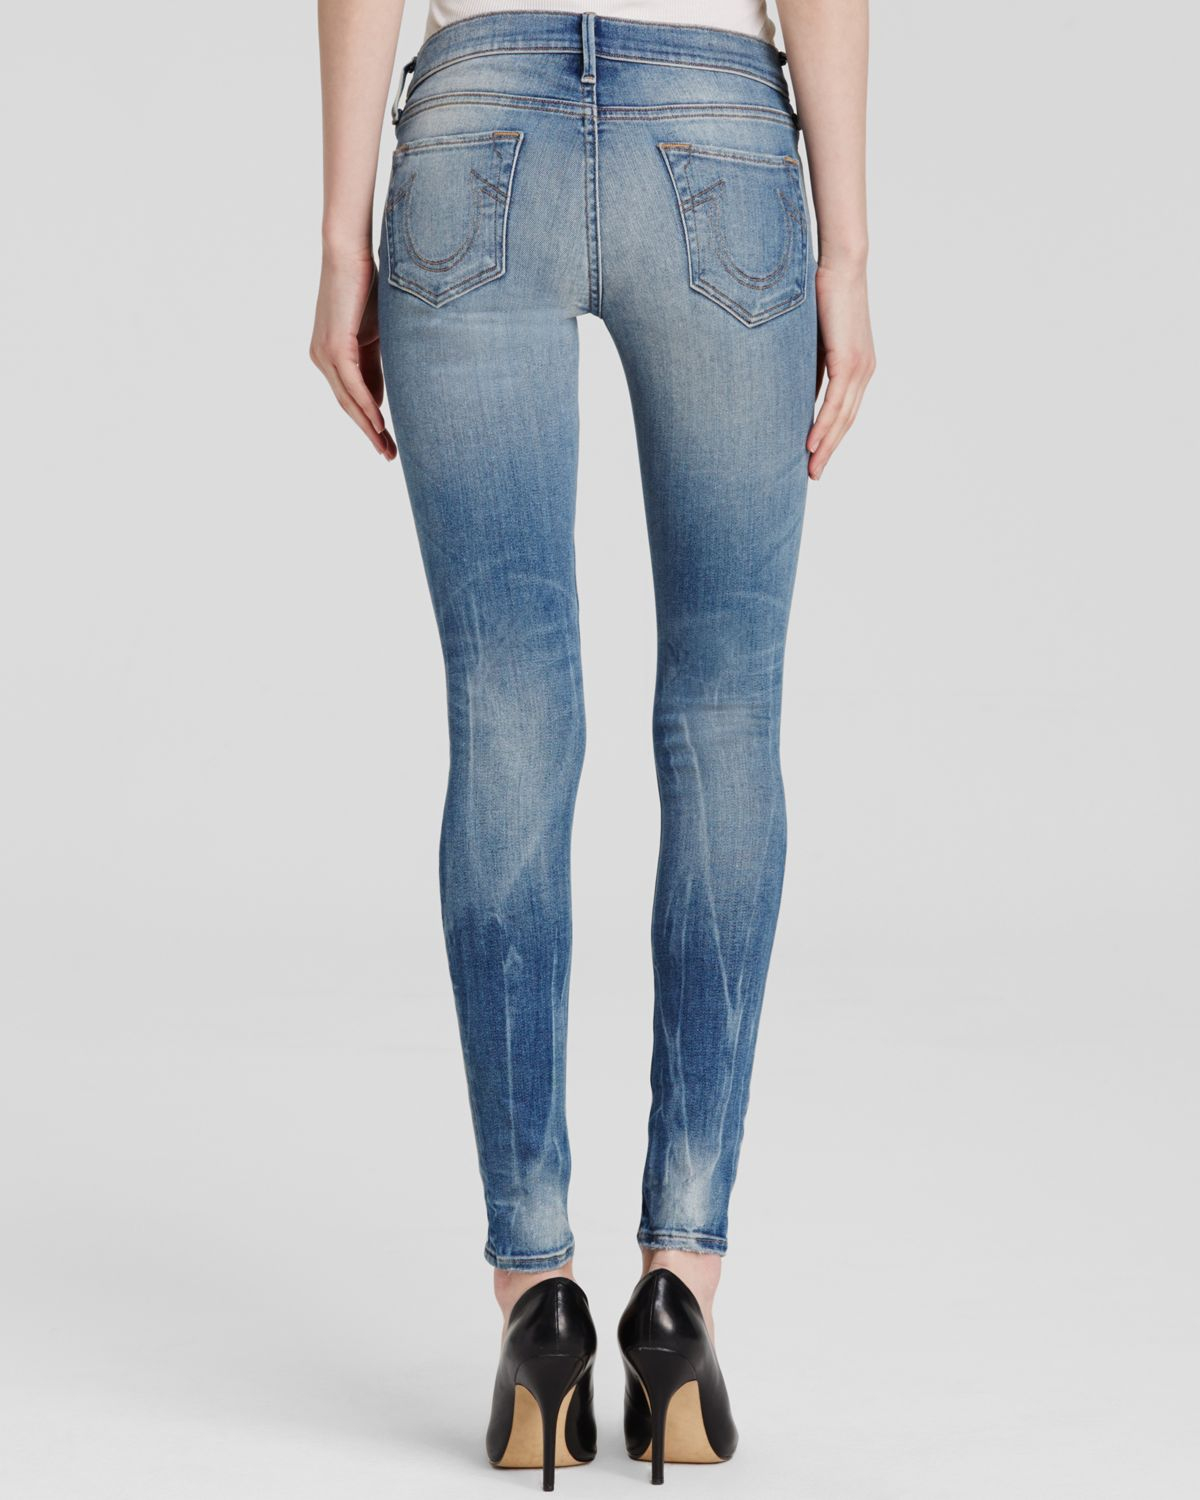 Womens Halle Destroyed Skinny Jeans True Religion SGjLMkyWT